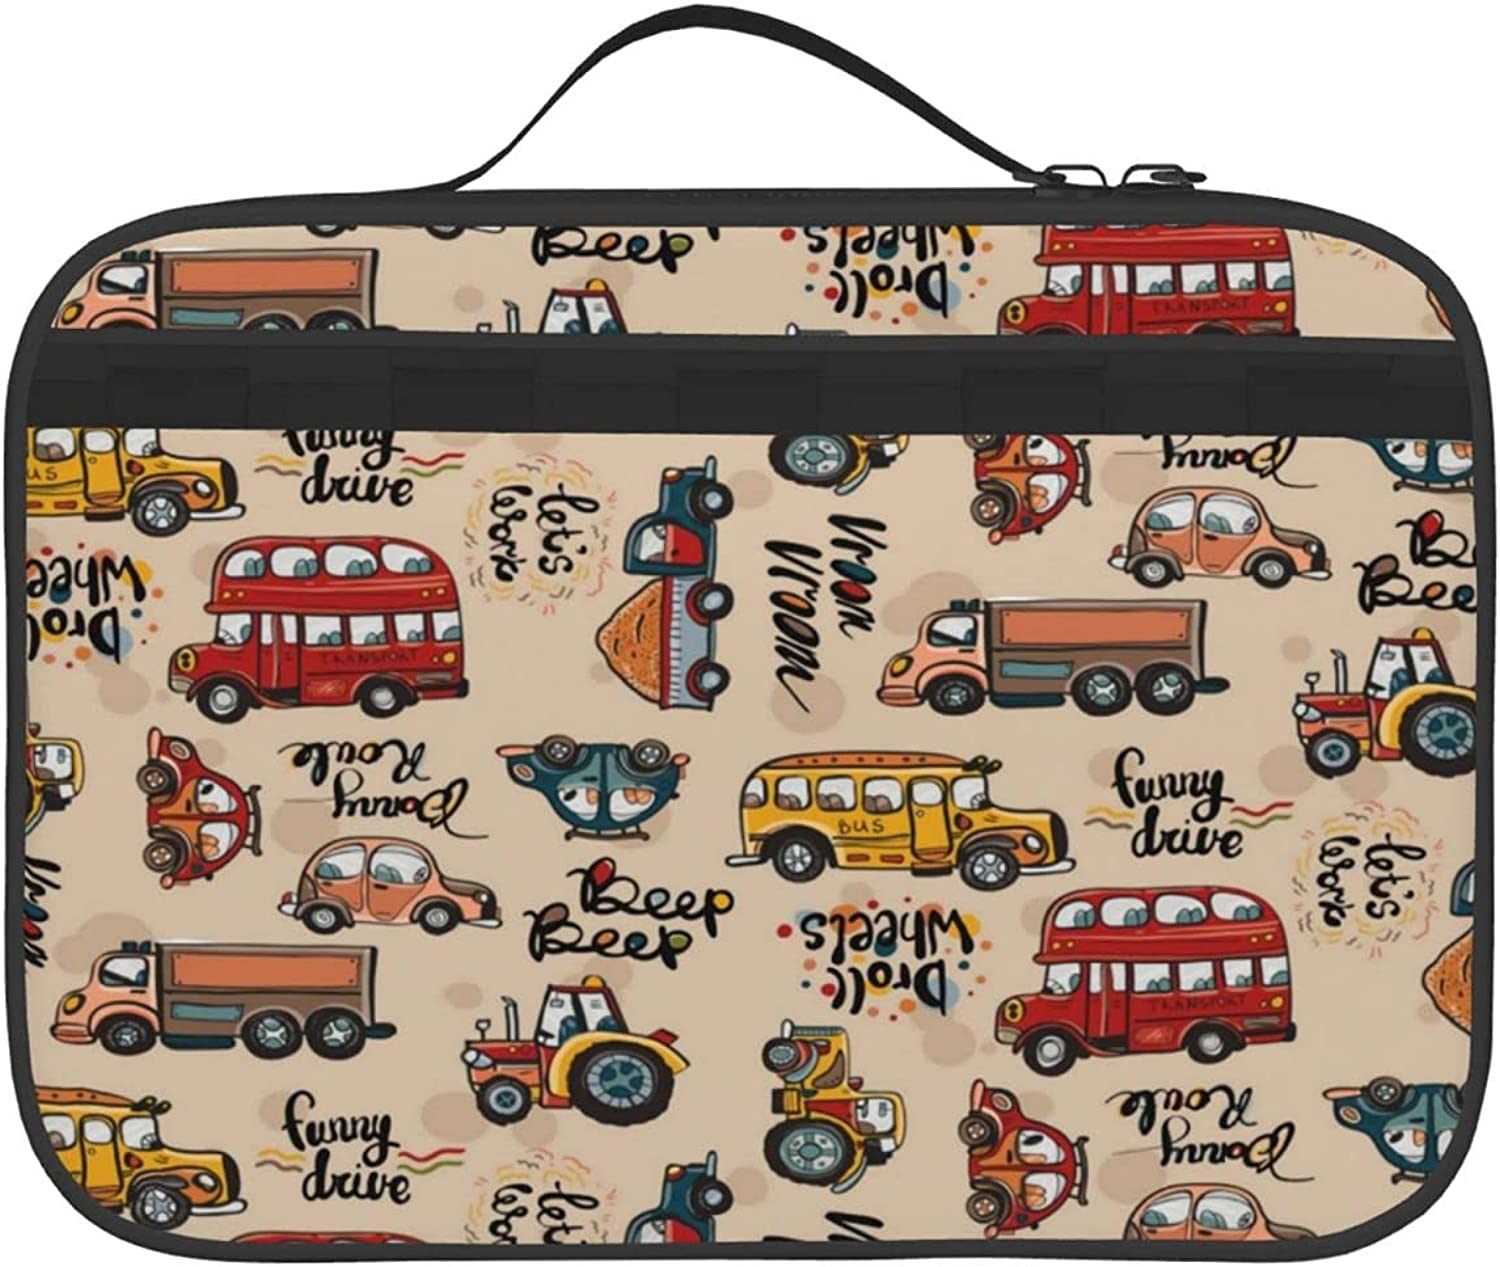 Vehicle Pattern Two-Side Printed Max 69% OFF Insulated Atlanta Mall For Bag Outdoor Lunch